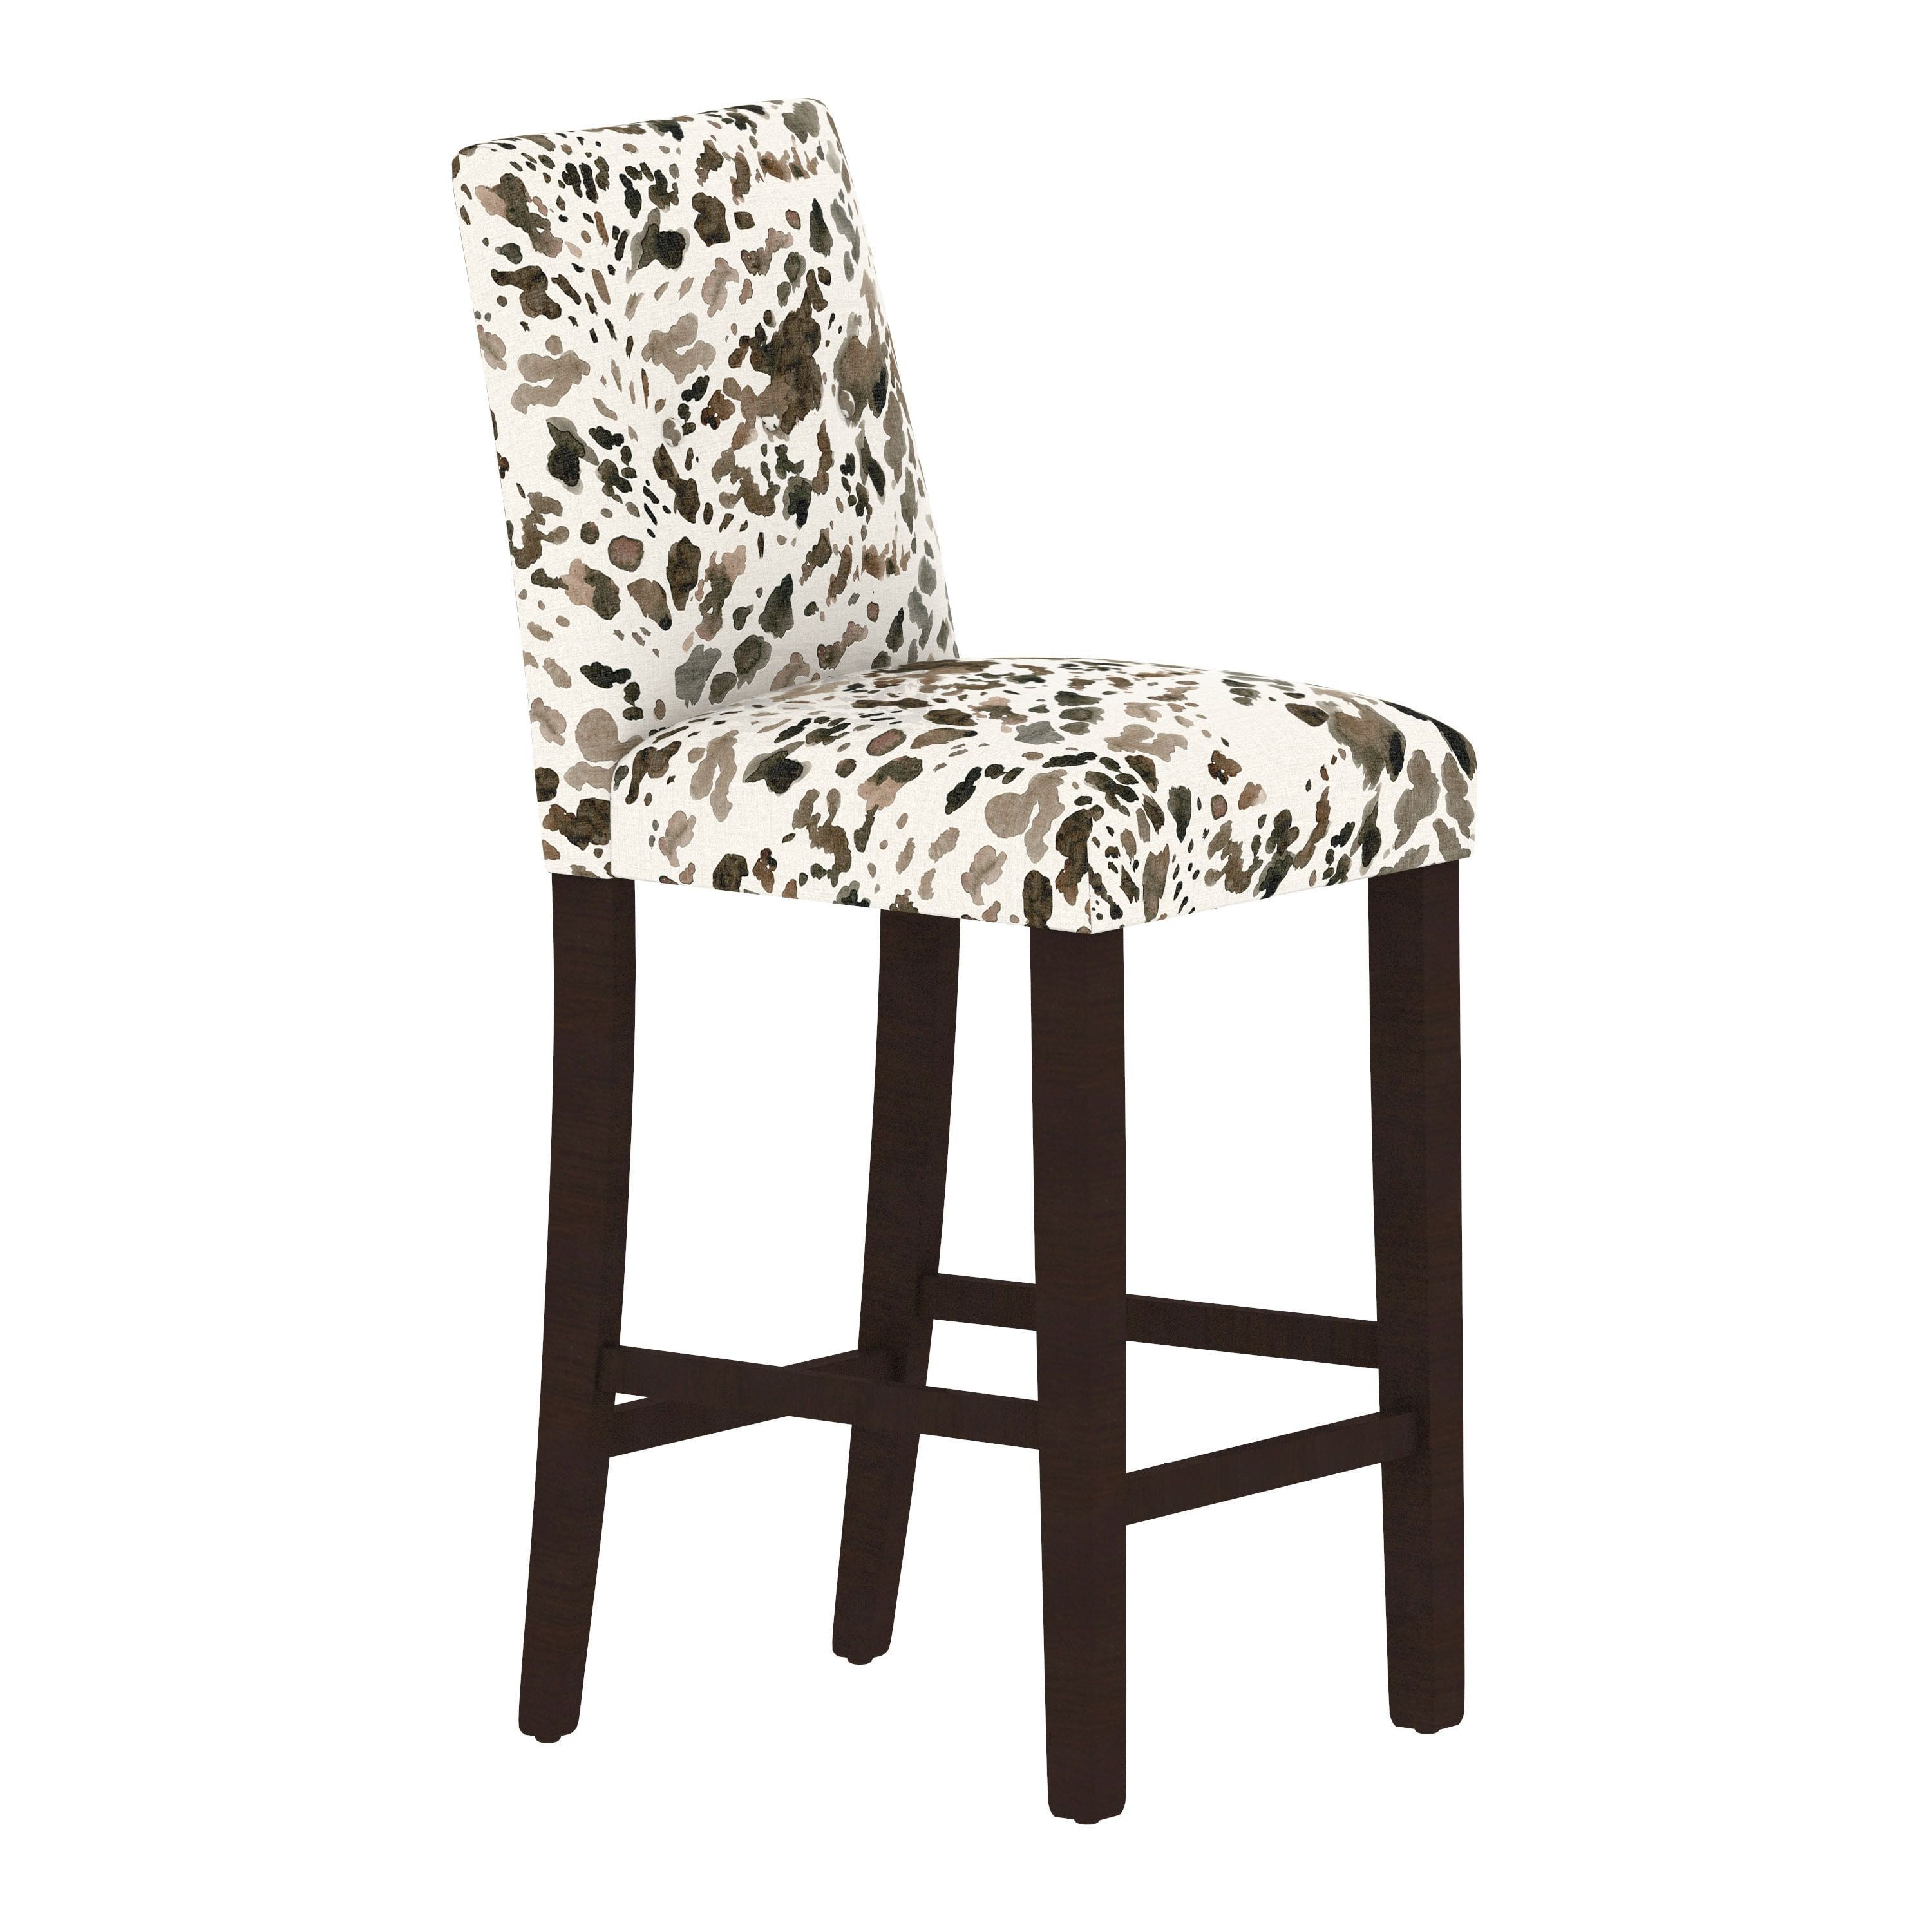 Pleasant Skyline Furniture Custom Bar Stool With Buttons In Prints Ncnpc Chair Design For Home Ncnpcorg